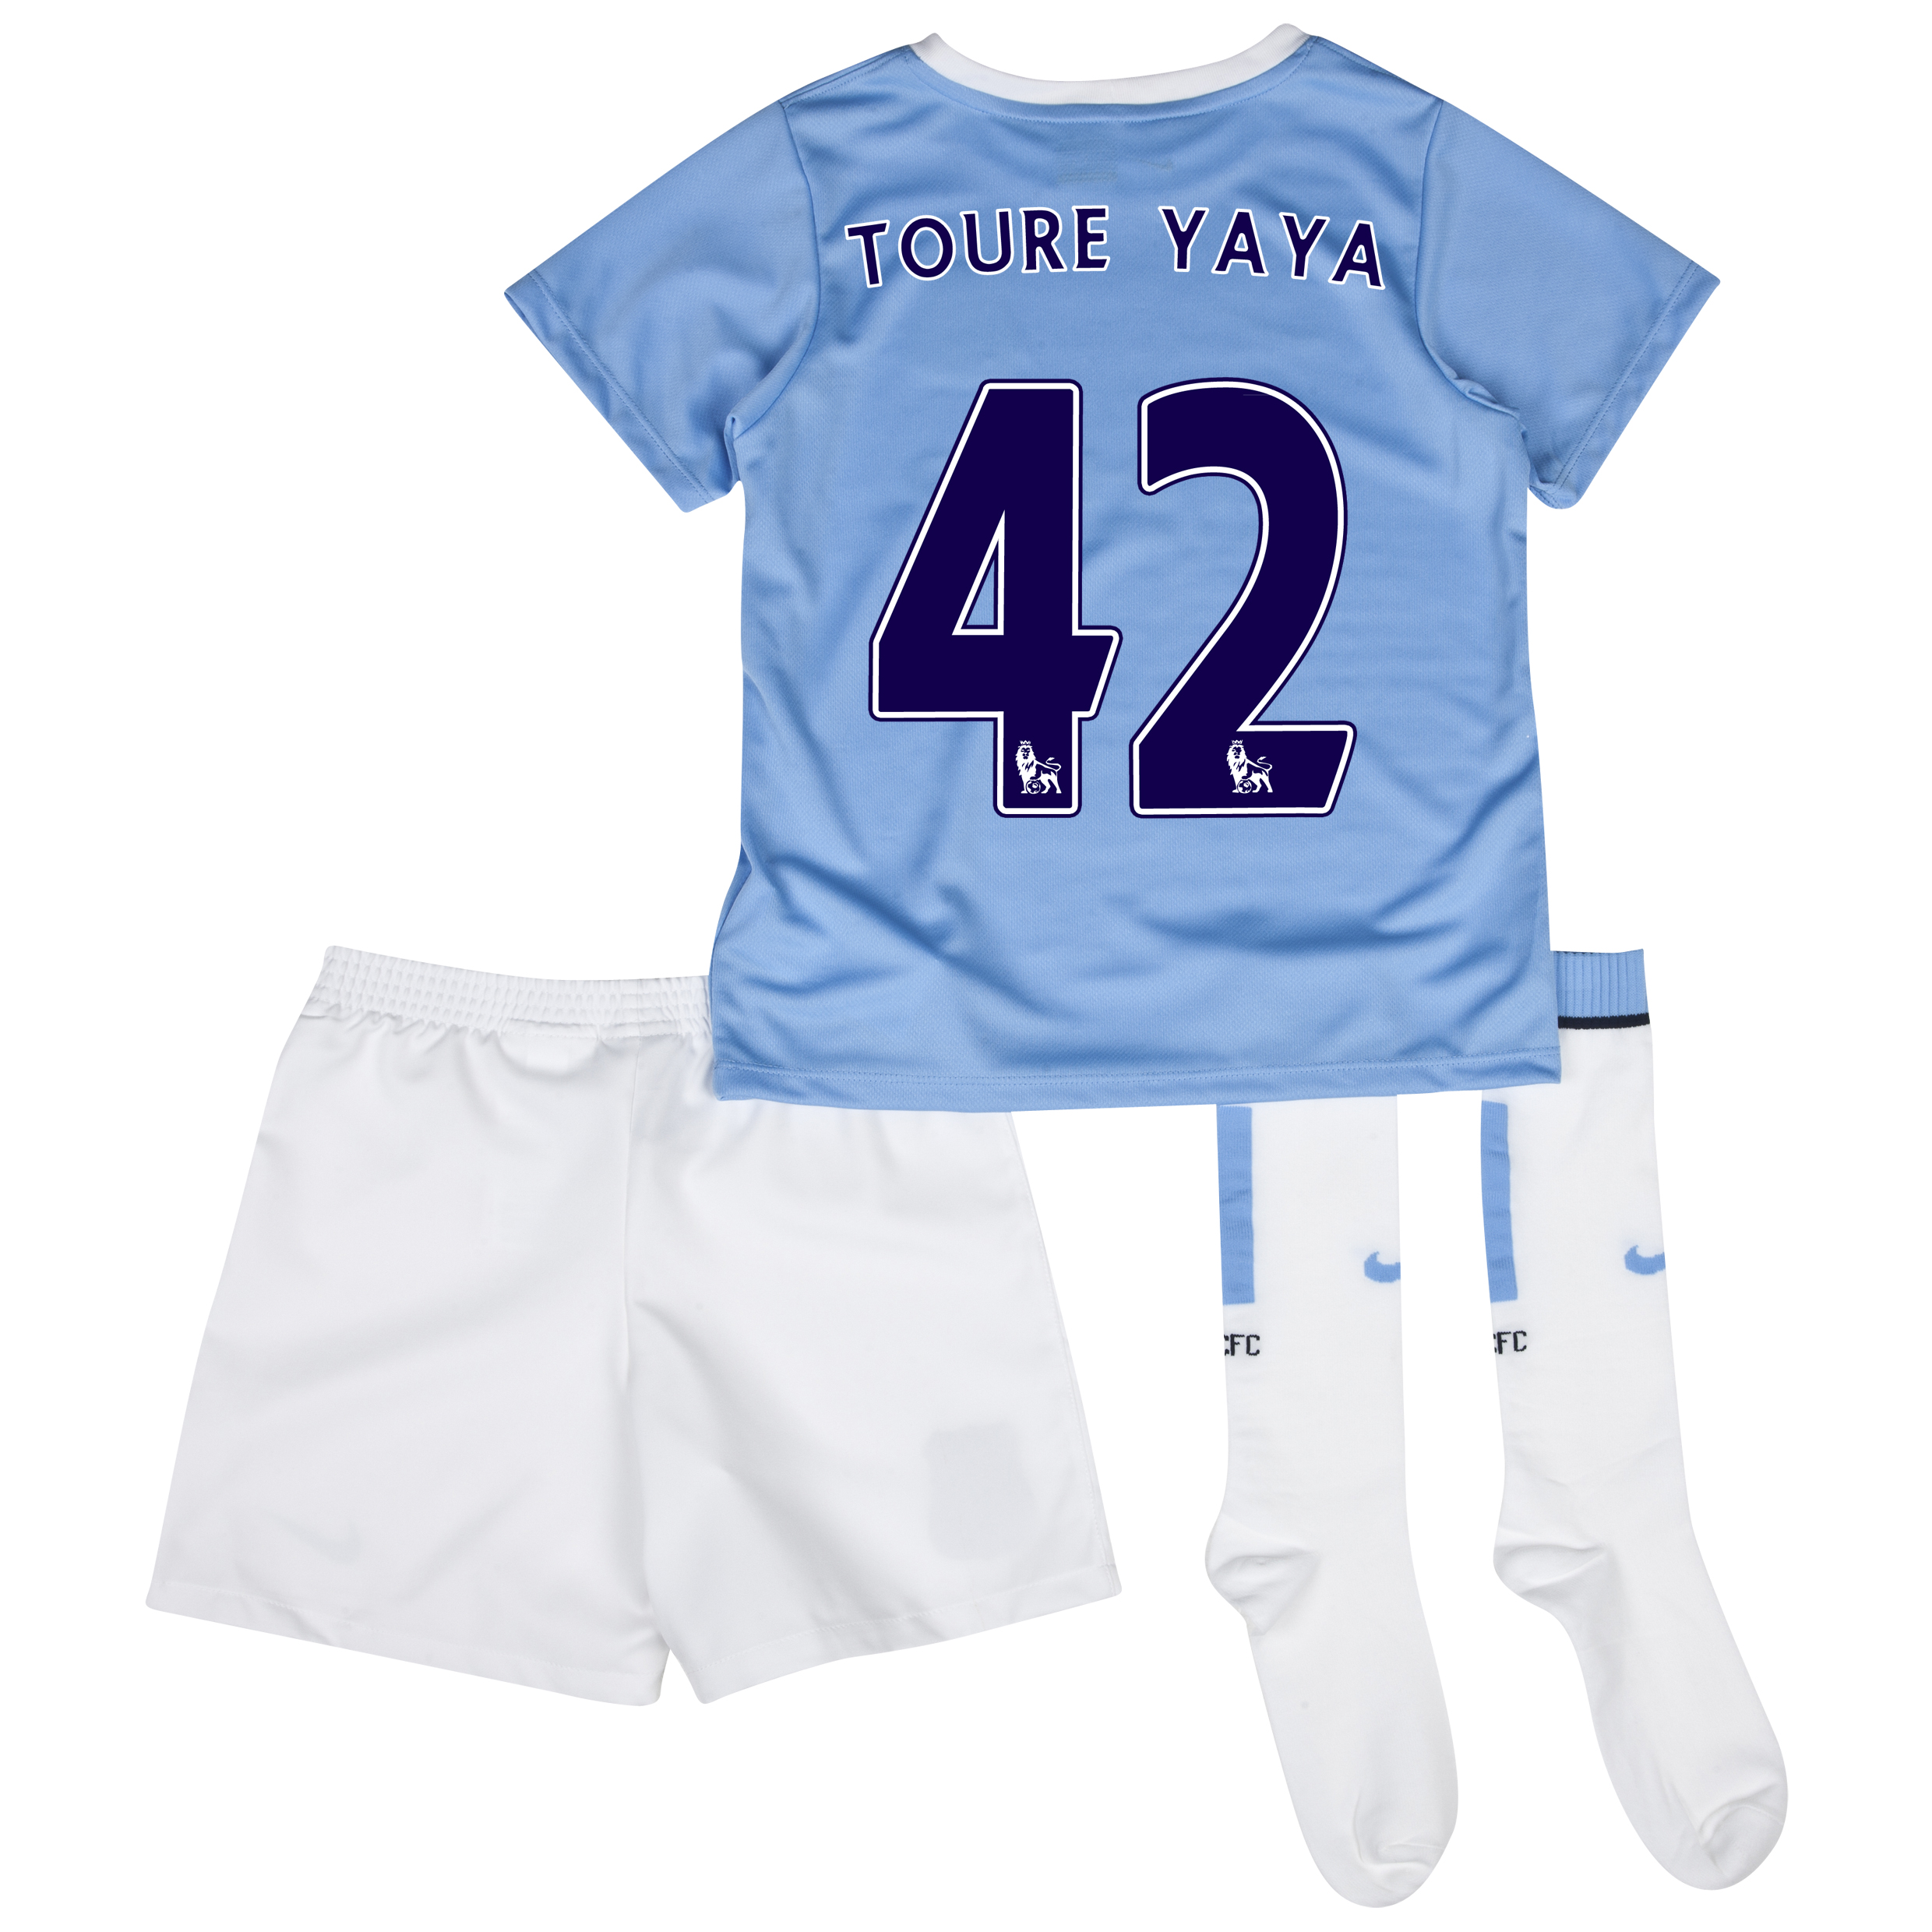 Manchester City Home Little Boys Kit 2013/14 with Toure Yaya 42 printing